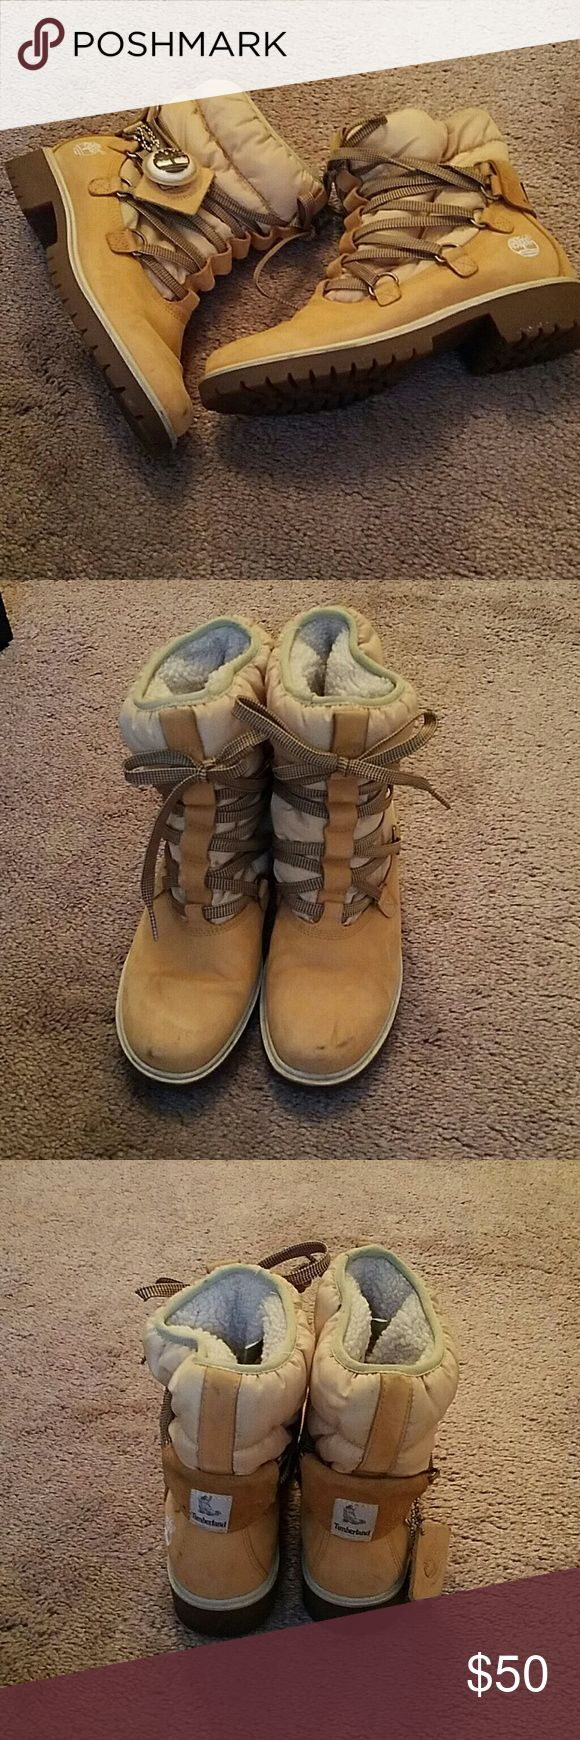 Timberland boots Cute tims boots still got life in them n a new home Timberland Shoes Ankle Boots & Booties